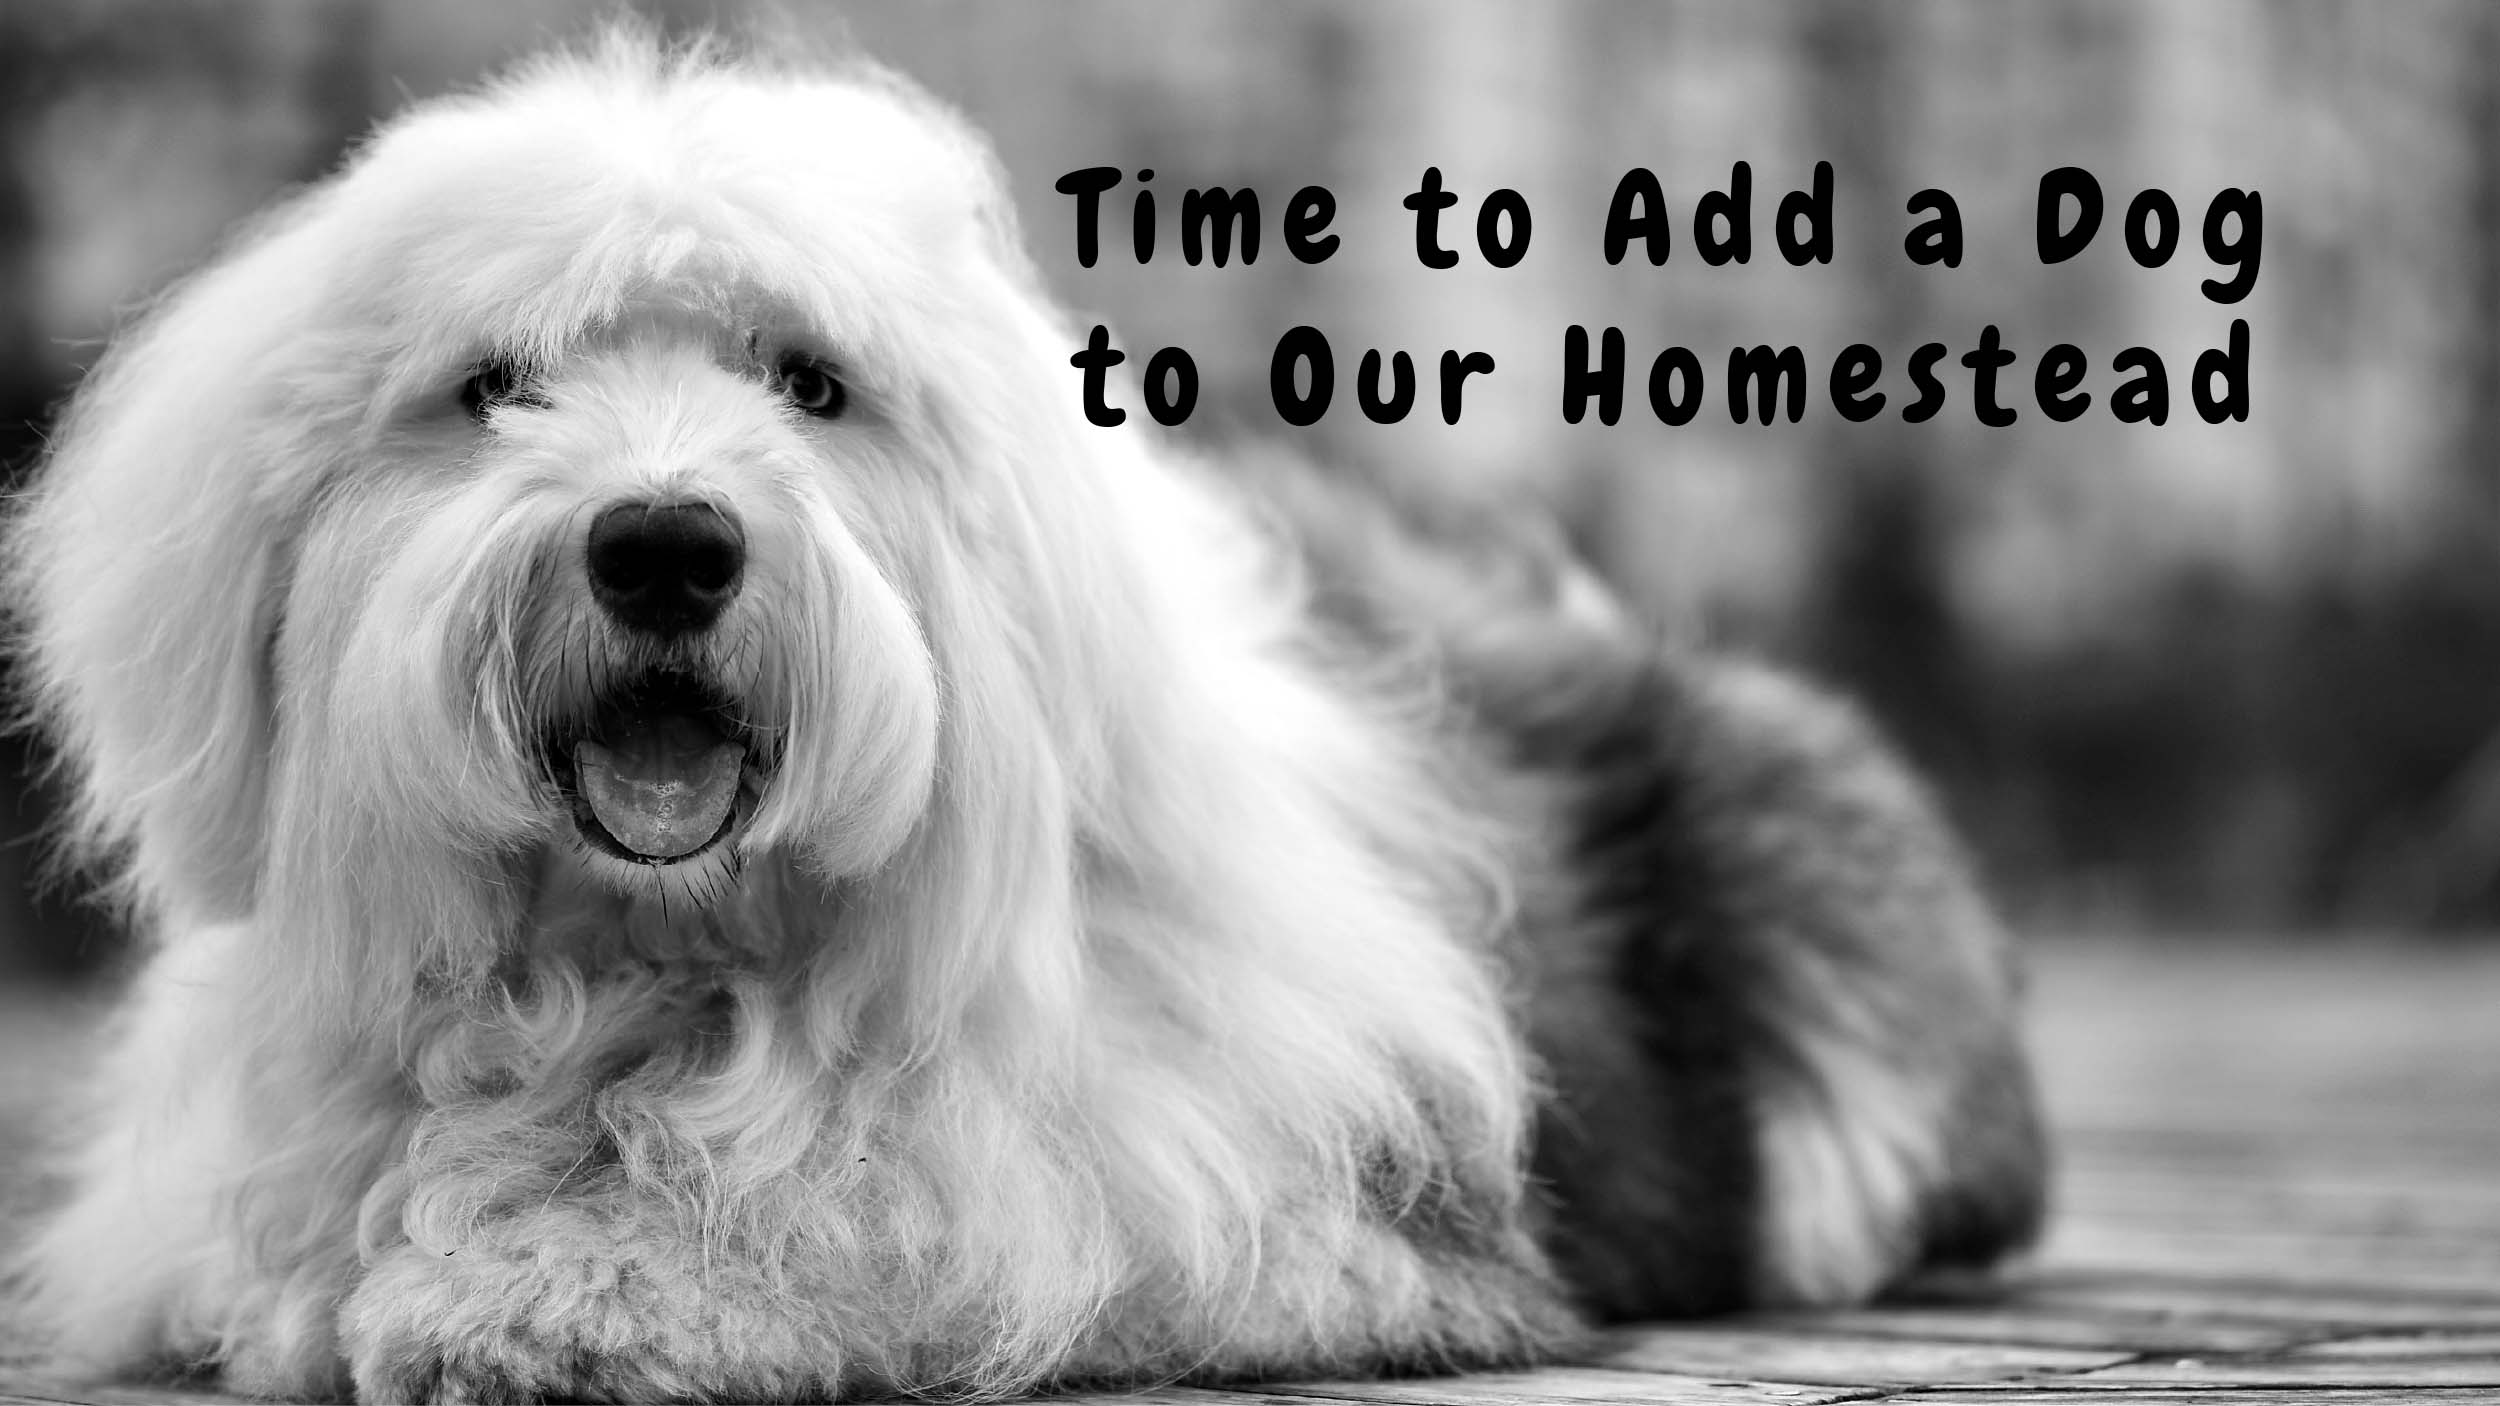 Livestock Guardian Dogs; Let's Add to Our Homestead